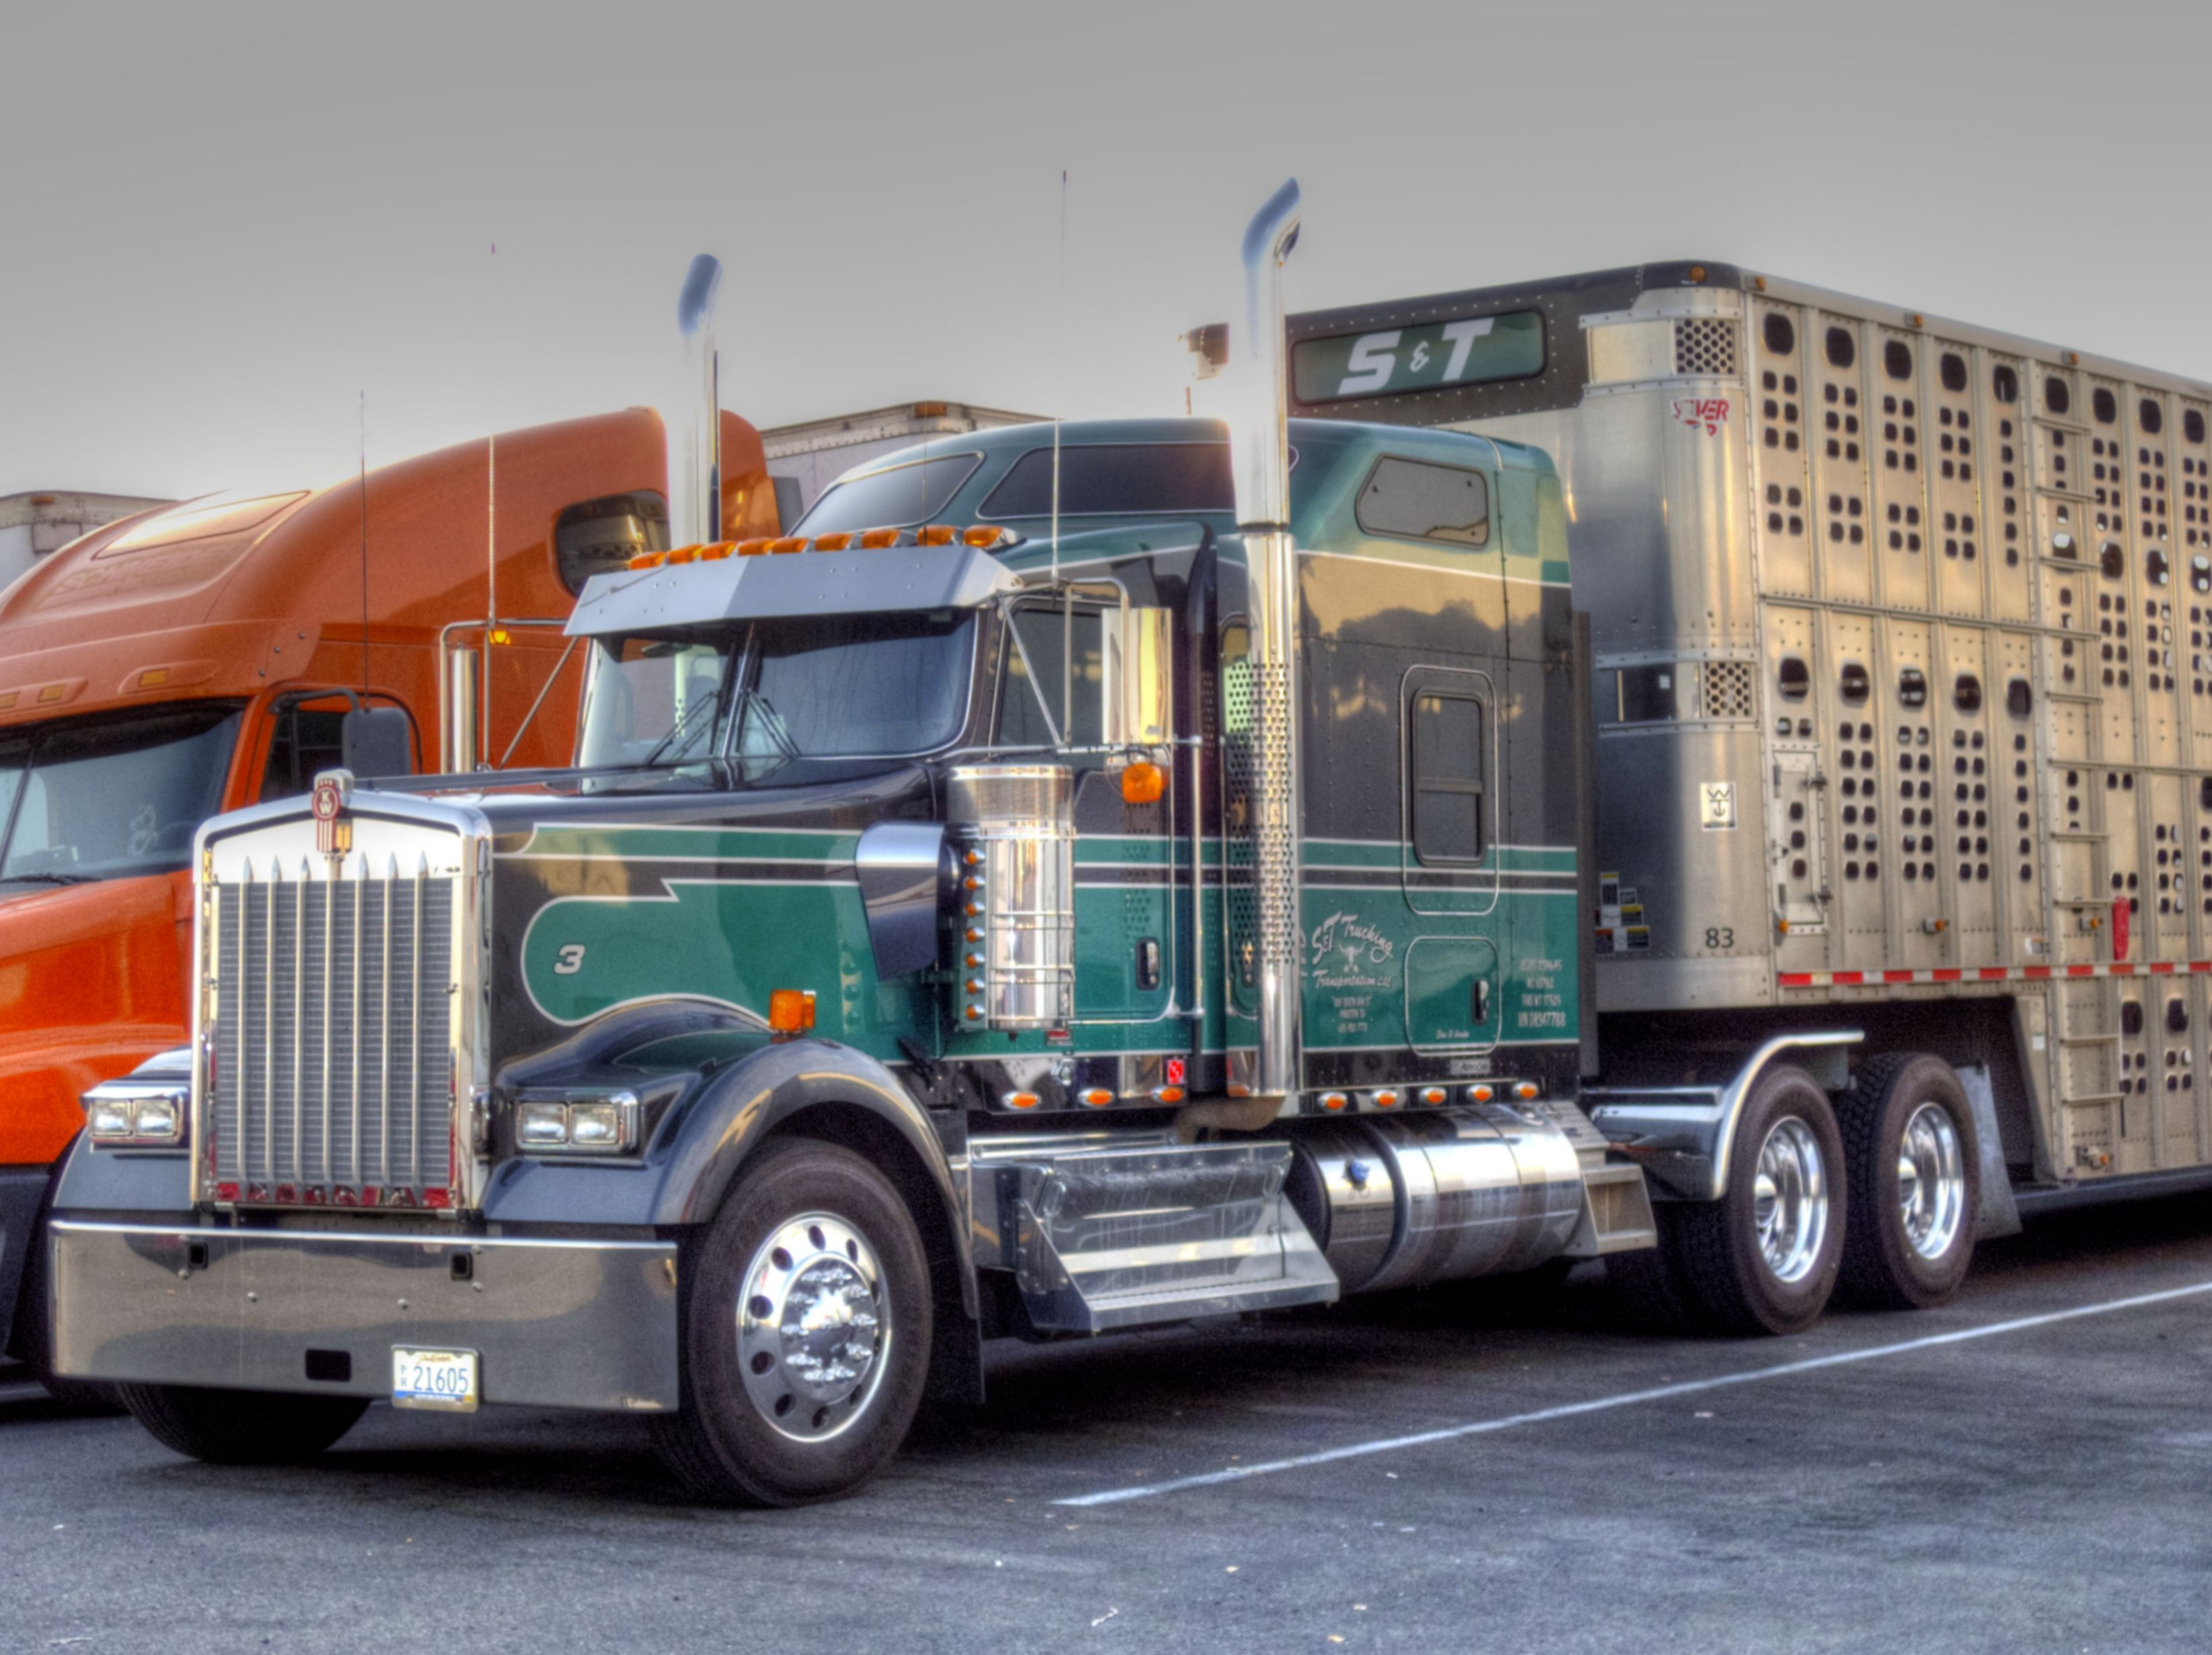 S And T Trucking Livestock Relocation Kenworth Epic Truck - Samsung safety truck shows the road ahead so cars can safely pass